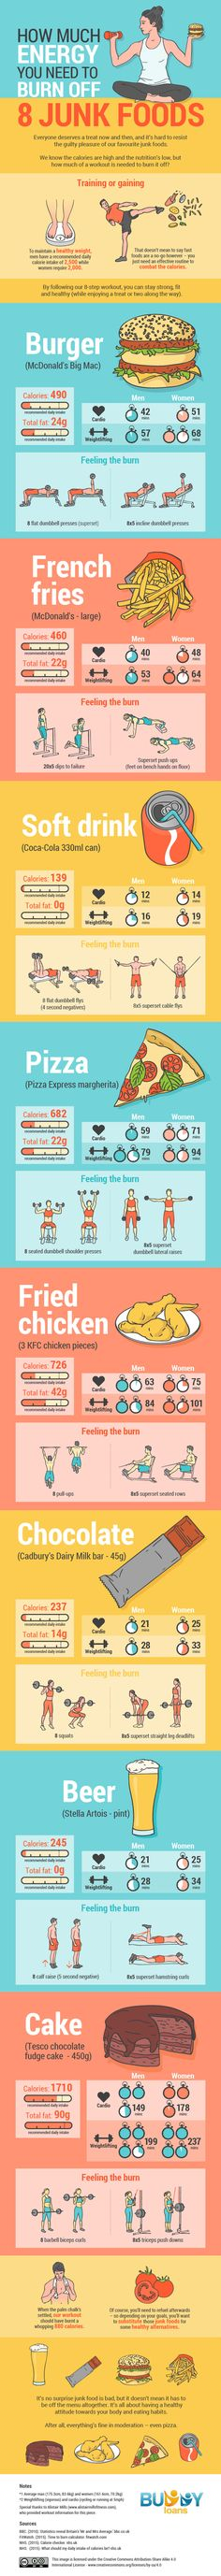 How Much Workout You Need To Burn Off Junk Foods Infographic #exercise #fitness #diet